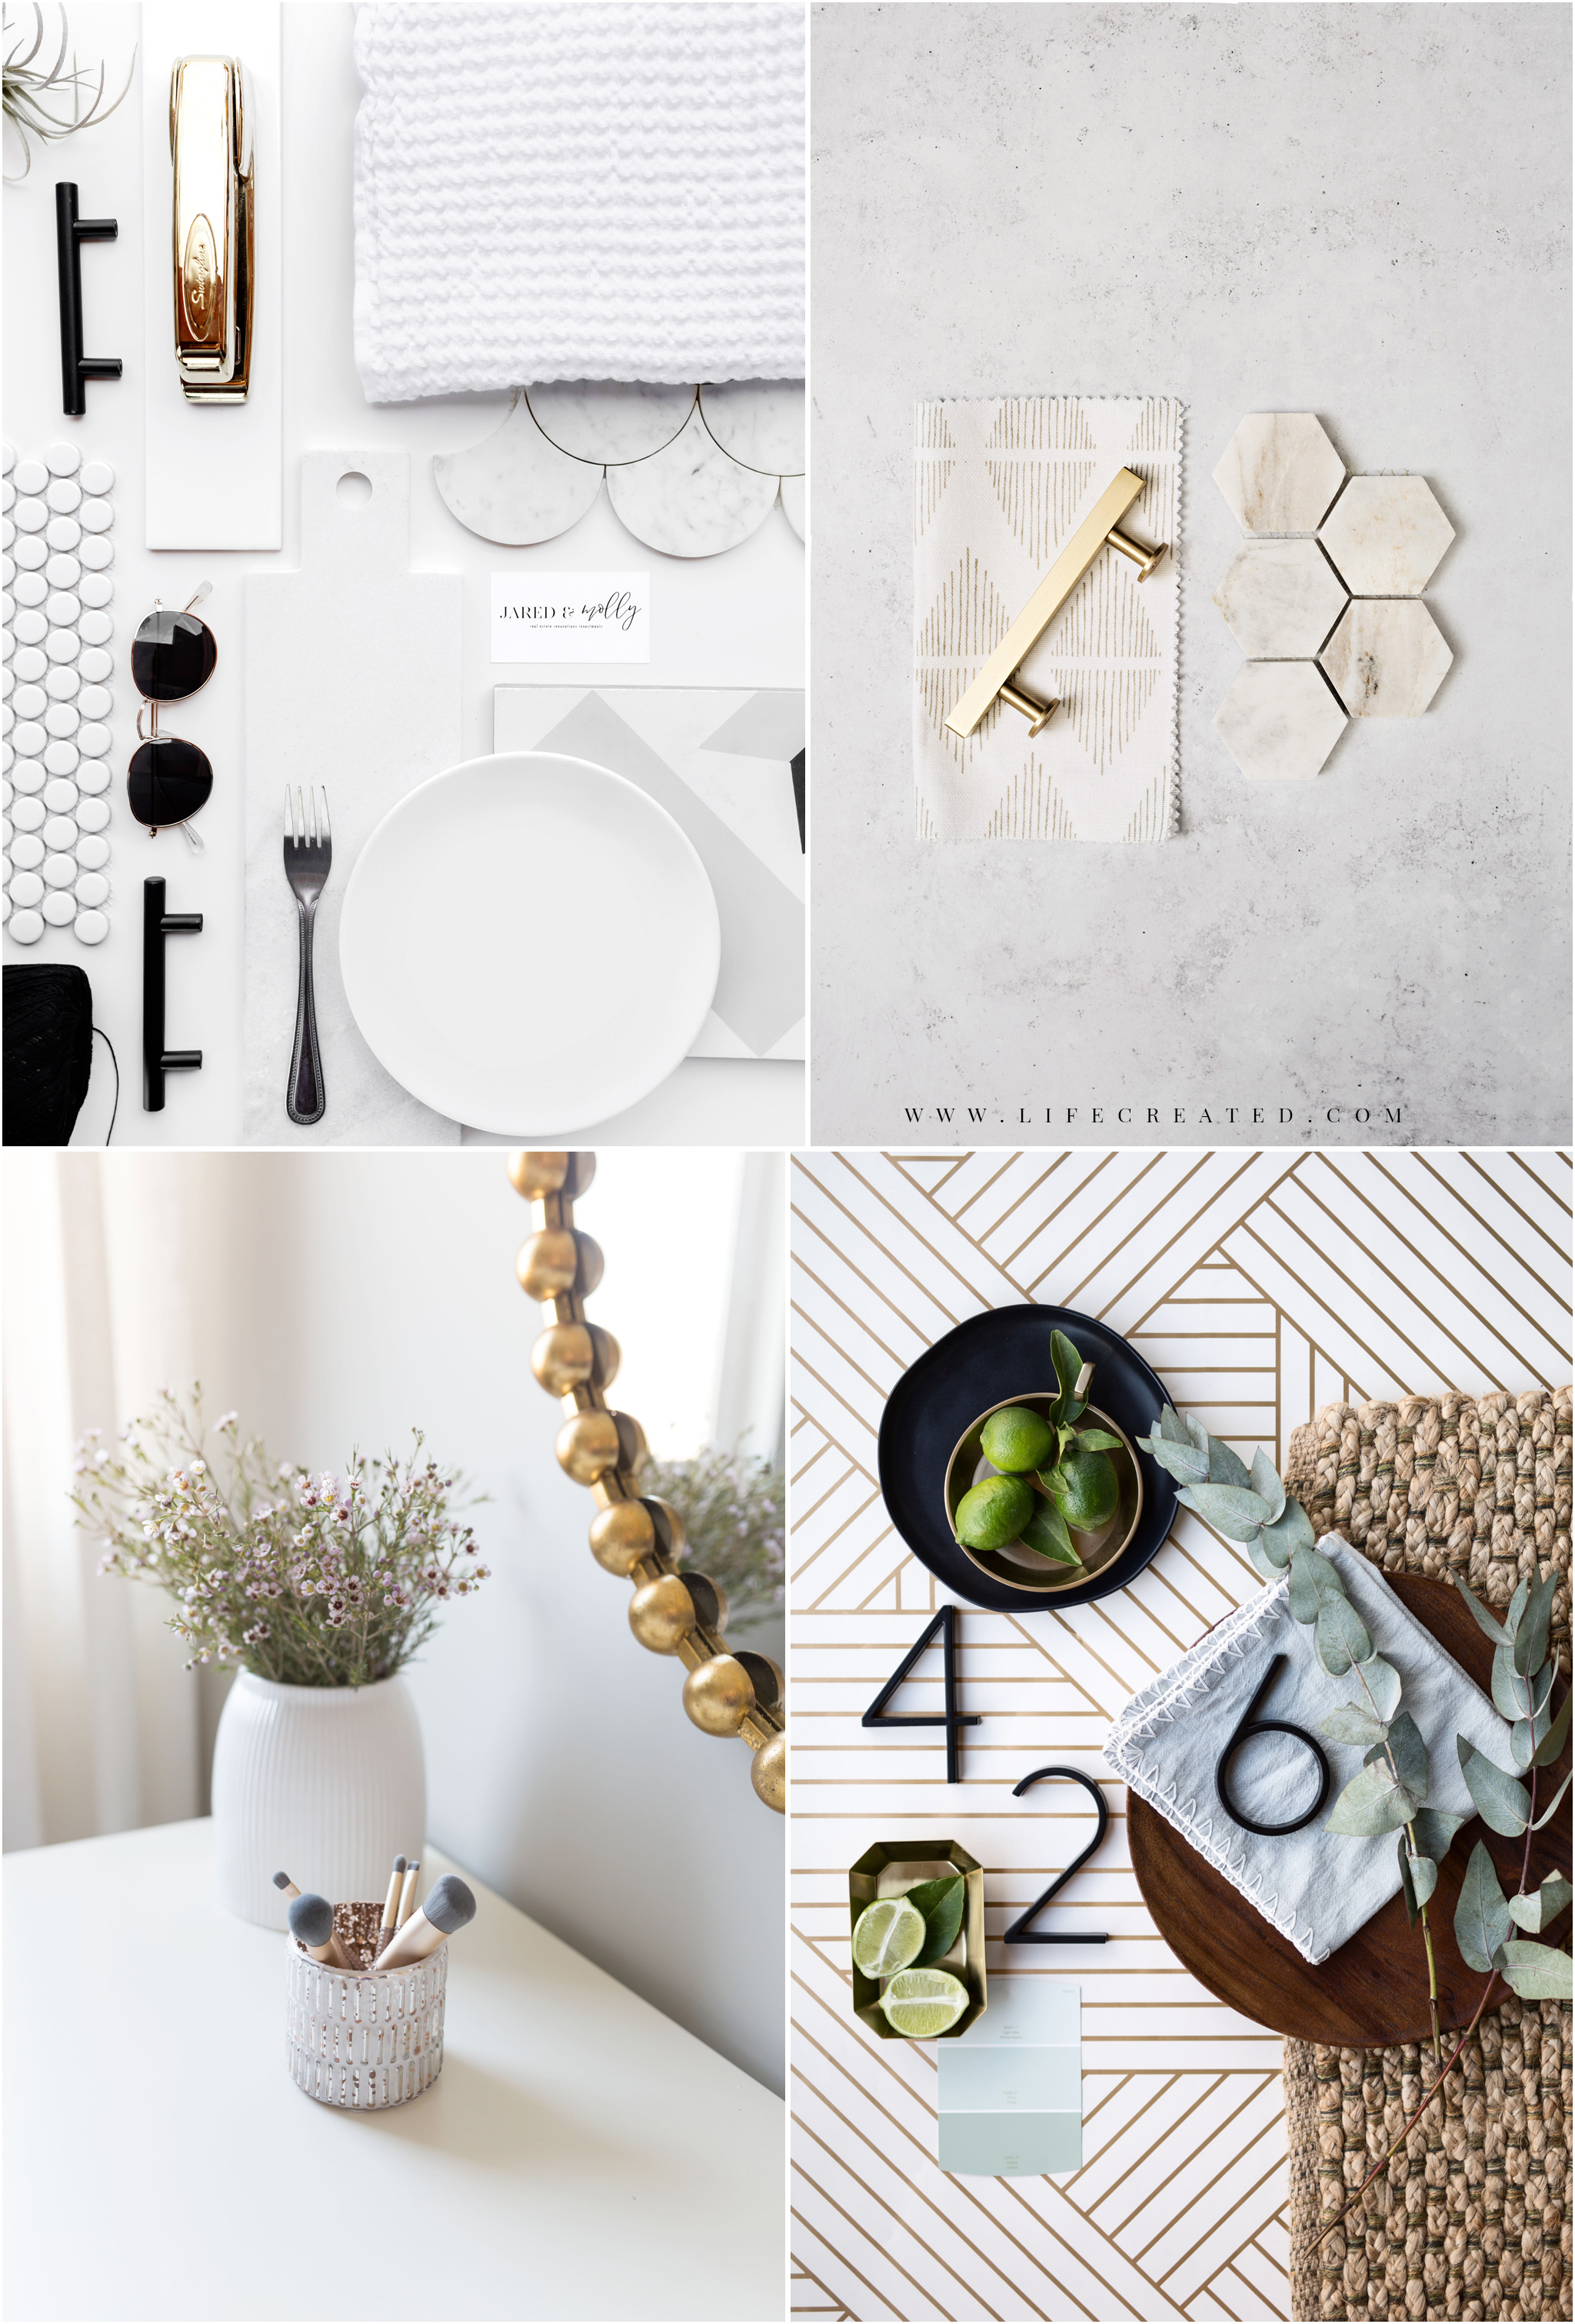 Design flat lays and details